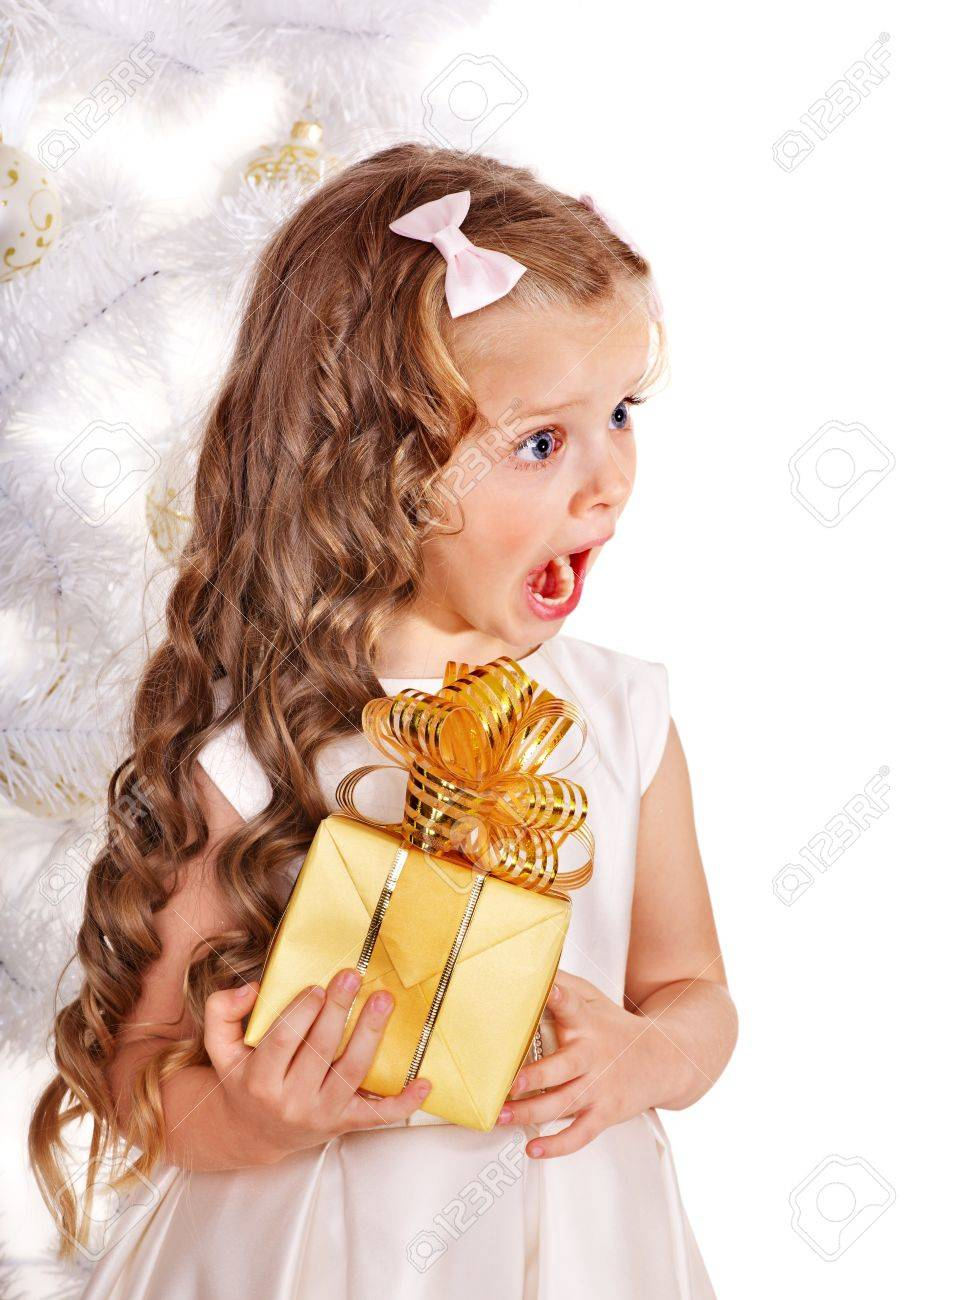 Child with gift box near white Christmas tree. Isolated. Stock Photo - 11439581